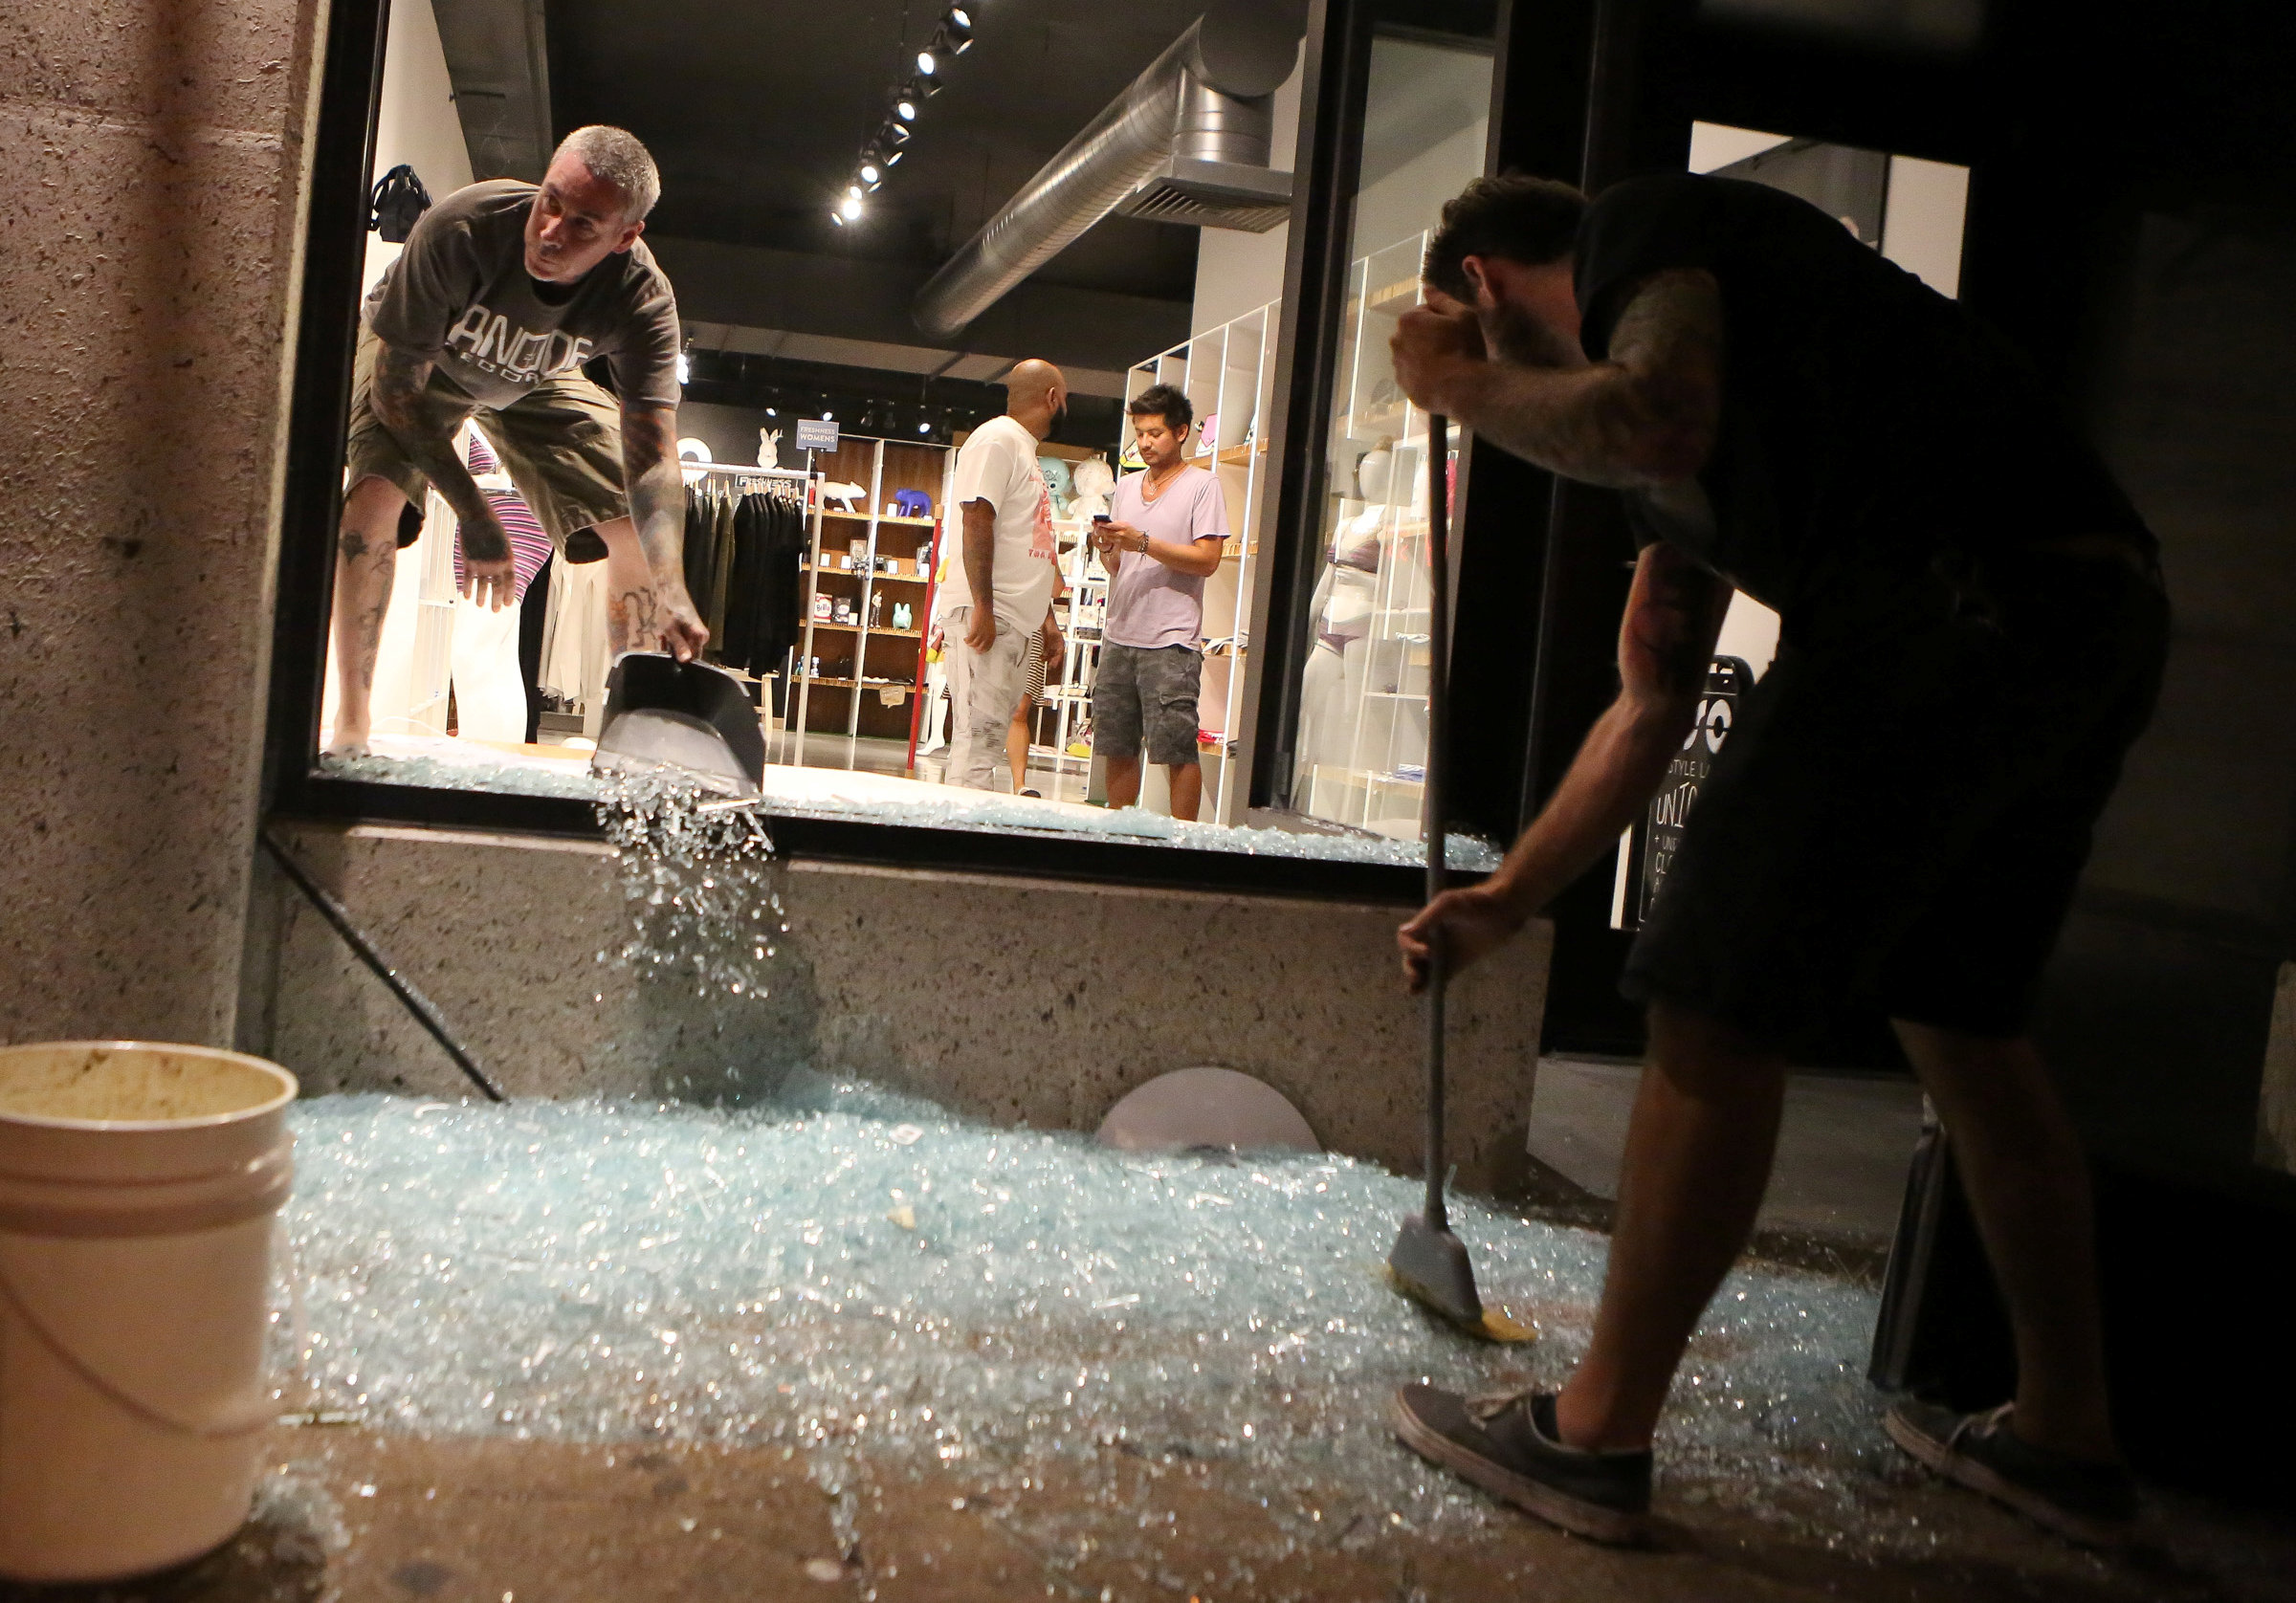 Shopkeepers clean up shattered glass during the second night of demonstrations after a not guilty verdict in the murder trial of former St. Louis police officer Jason Stockley, charged with the 2011 shooting of Anthony Lamar Smith, who was black, in St. Louis, Missouri, U.S., September 16, 2017.